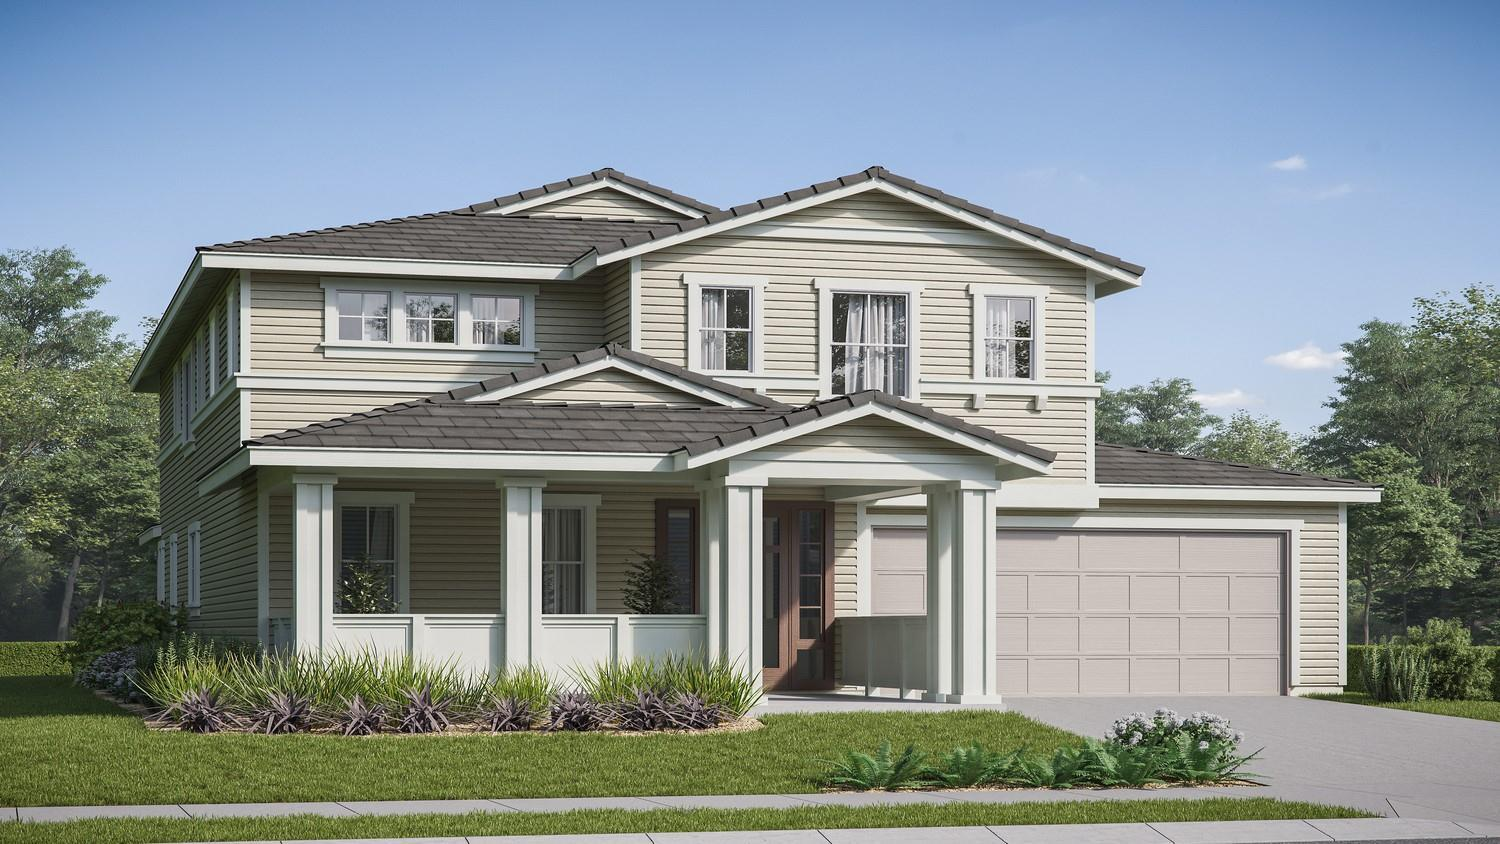 Single Family for Active at Heritage Grove - Residence 4 105 Teakwood Fillmore, California 93015 United States